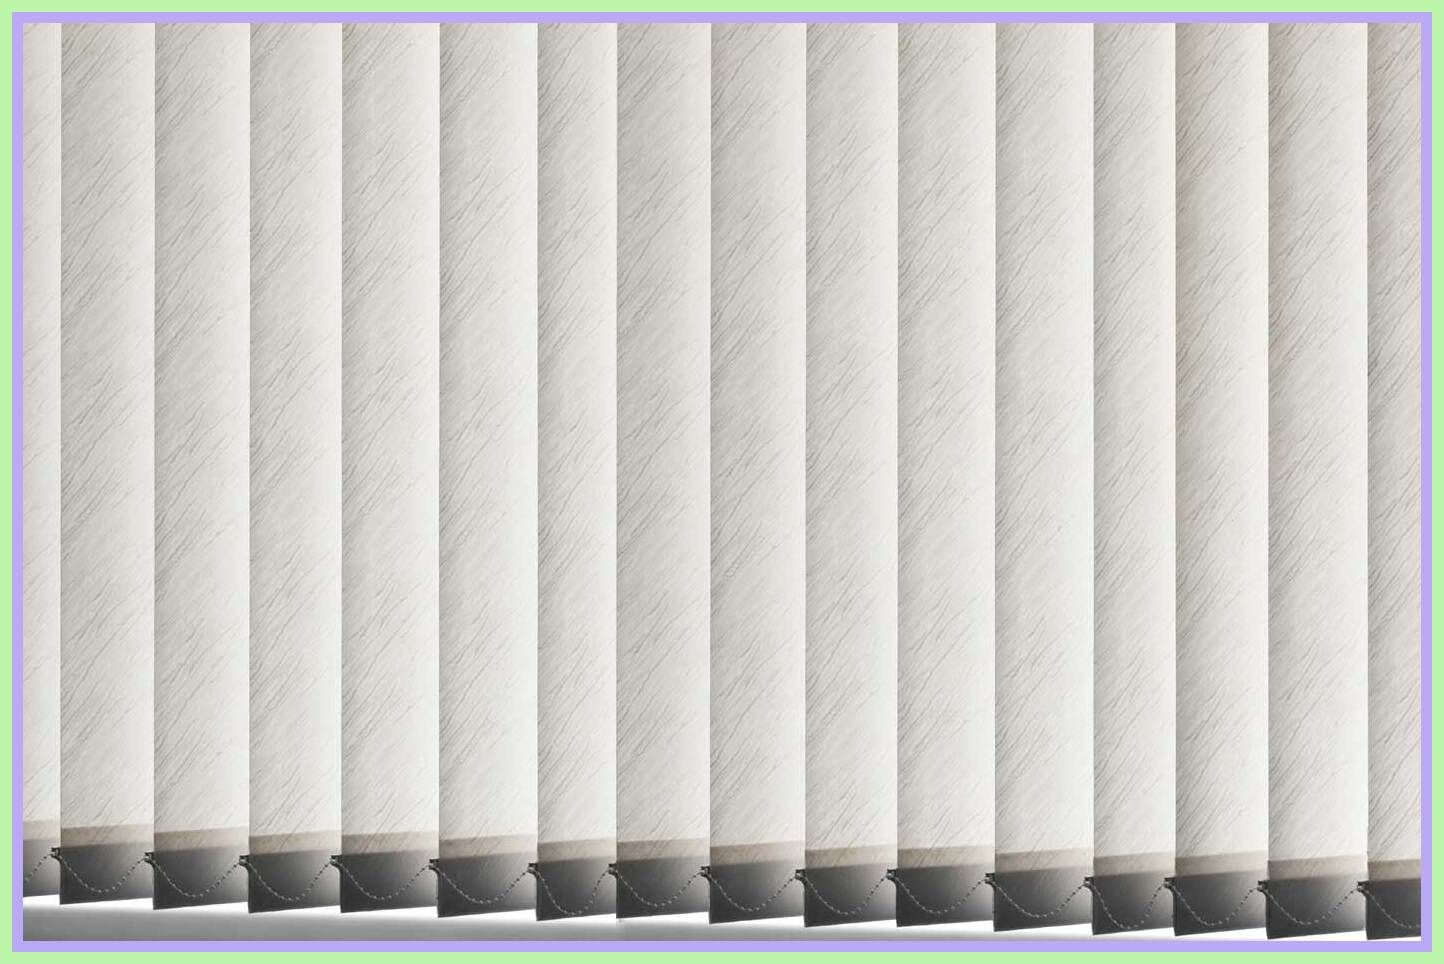 73 Reference Of Venetian Office Blinds In 2020 Fabric Blinds Vertical Window Blinds Vertical Blinds